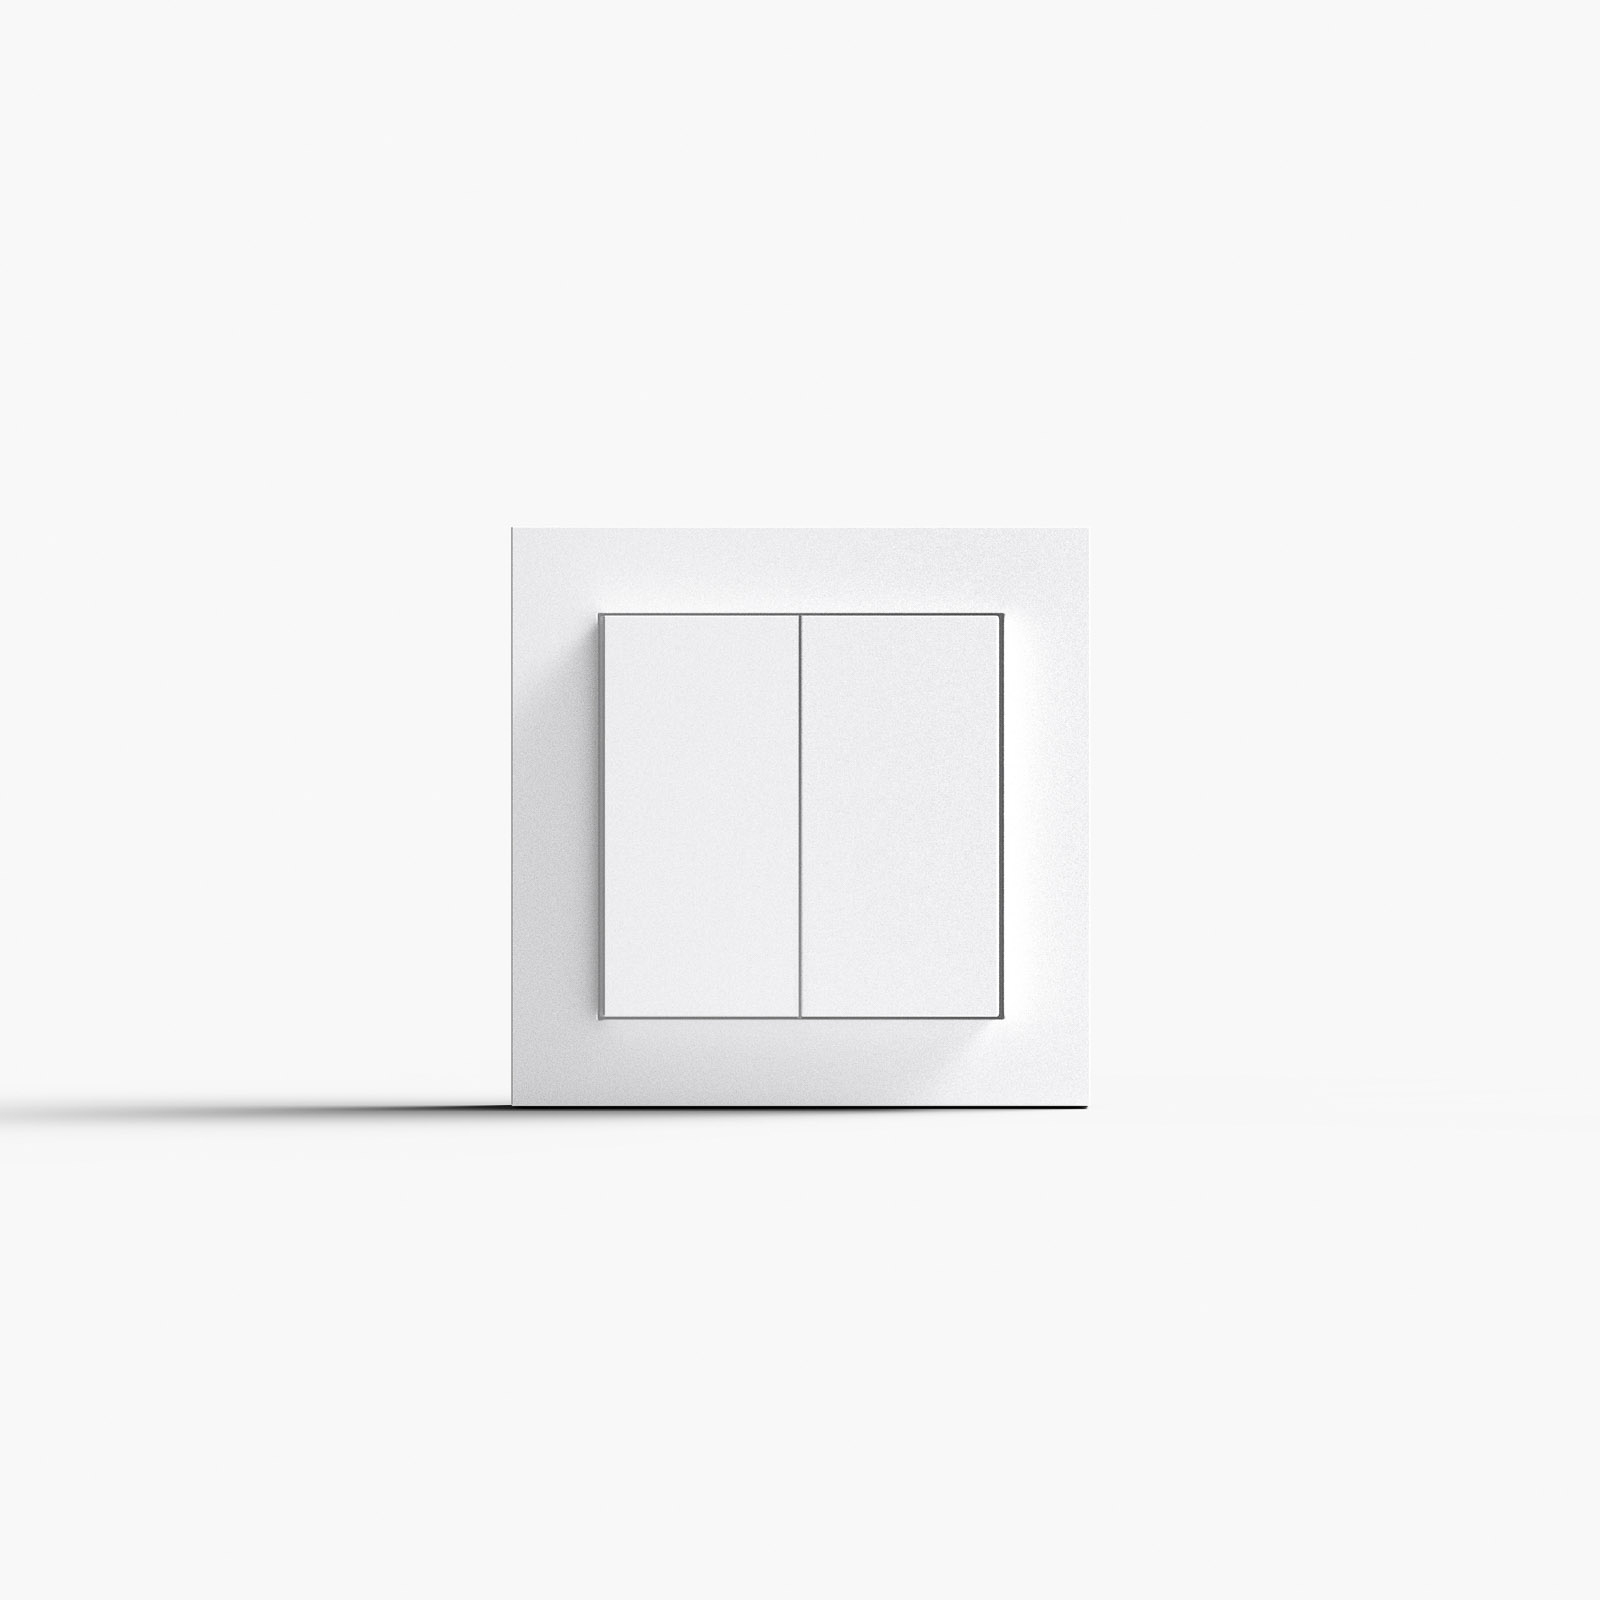 Senic Smart Switch Philips Hue 3-er, weiß glänzend